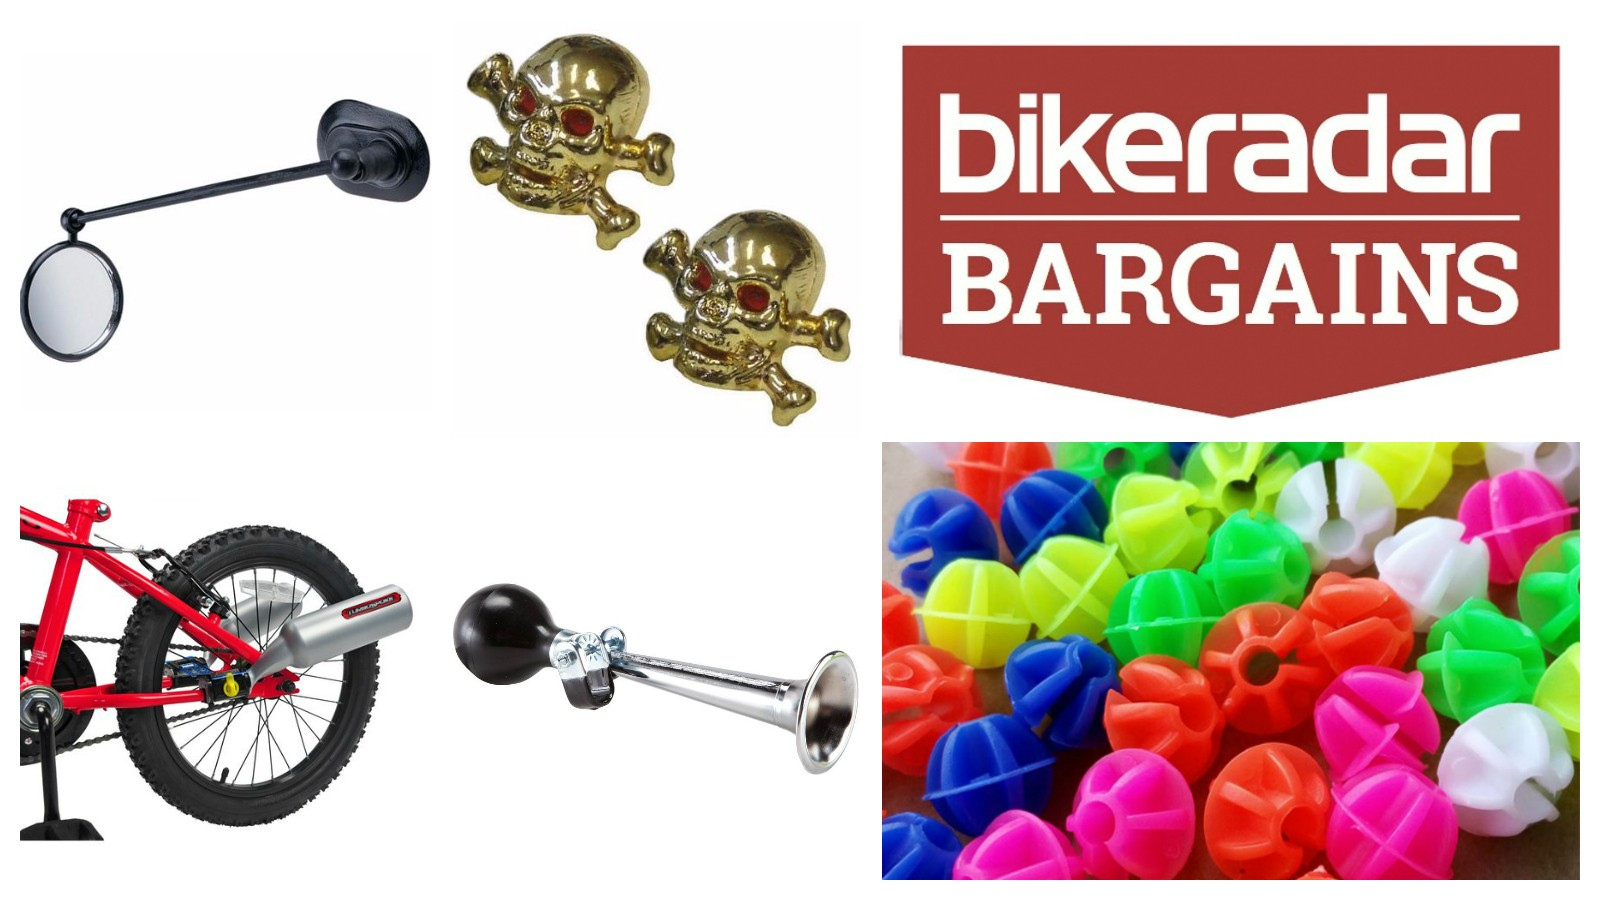 For this week's edition of BikeRadar Bargains, we've pulled together five of the naffest accessories we could find from around the web